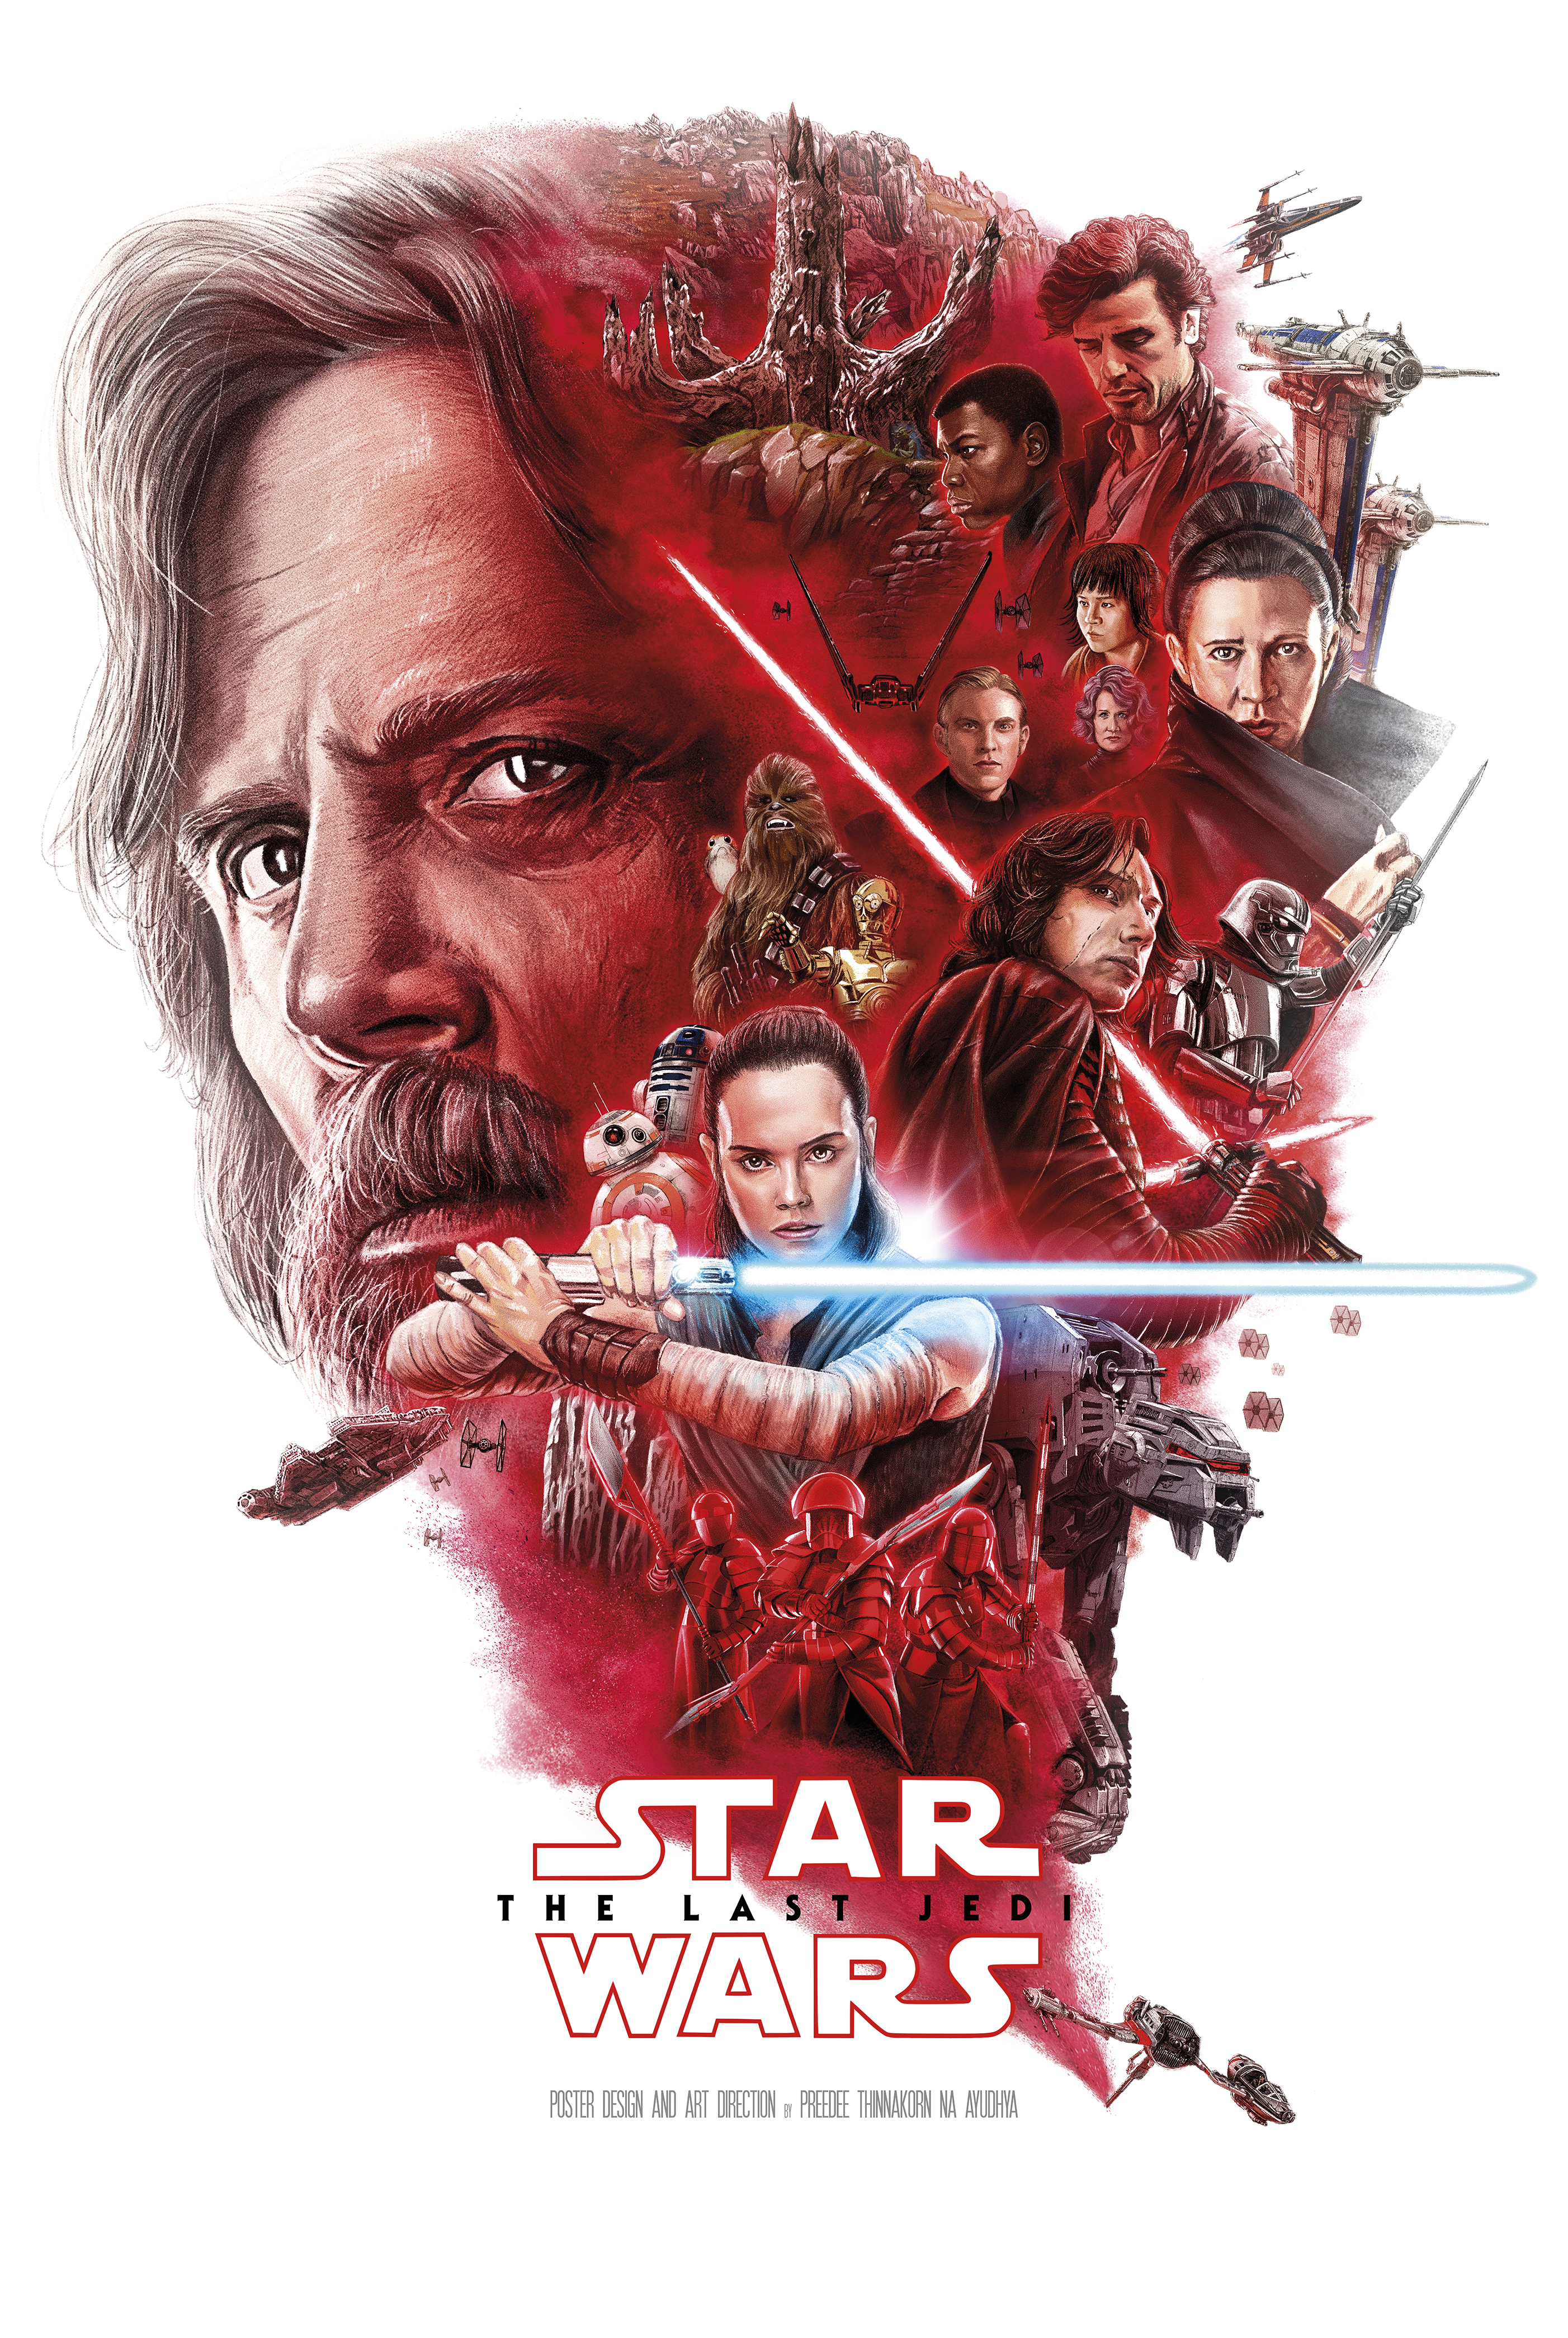 STARWARS_The Last Jedi_re